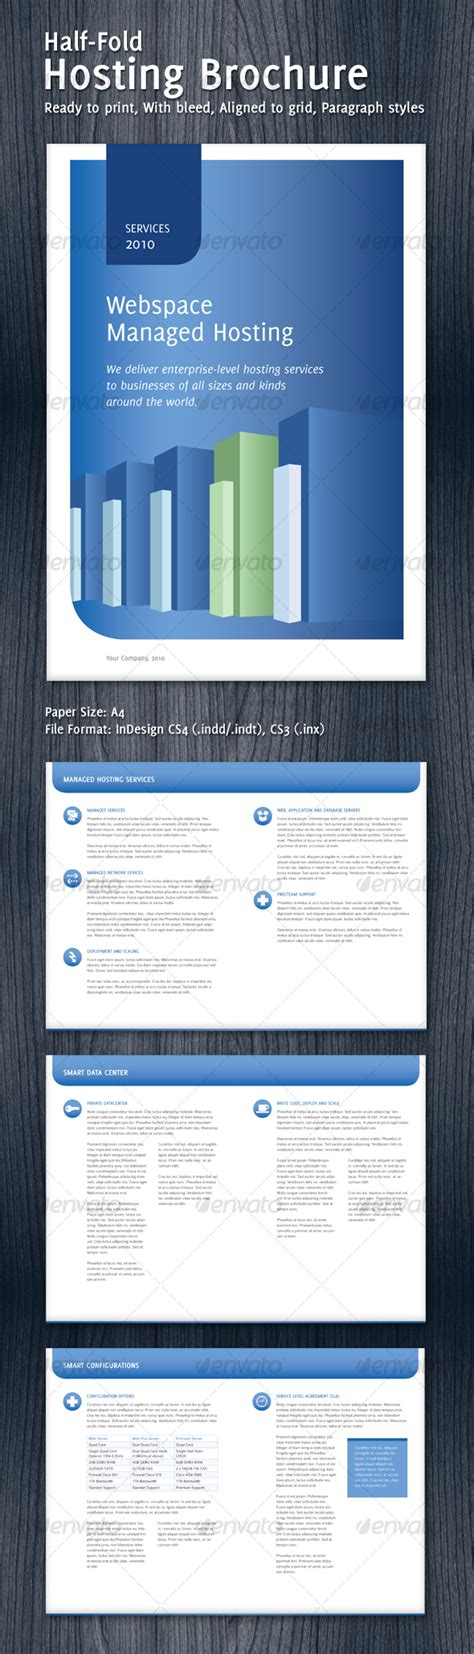 Half Fold Hosting Brochure By Id512 Graphicriver Half Fold Brochure Template Powerpoint